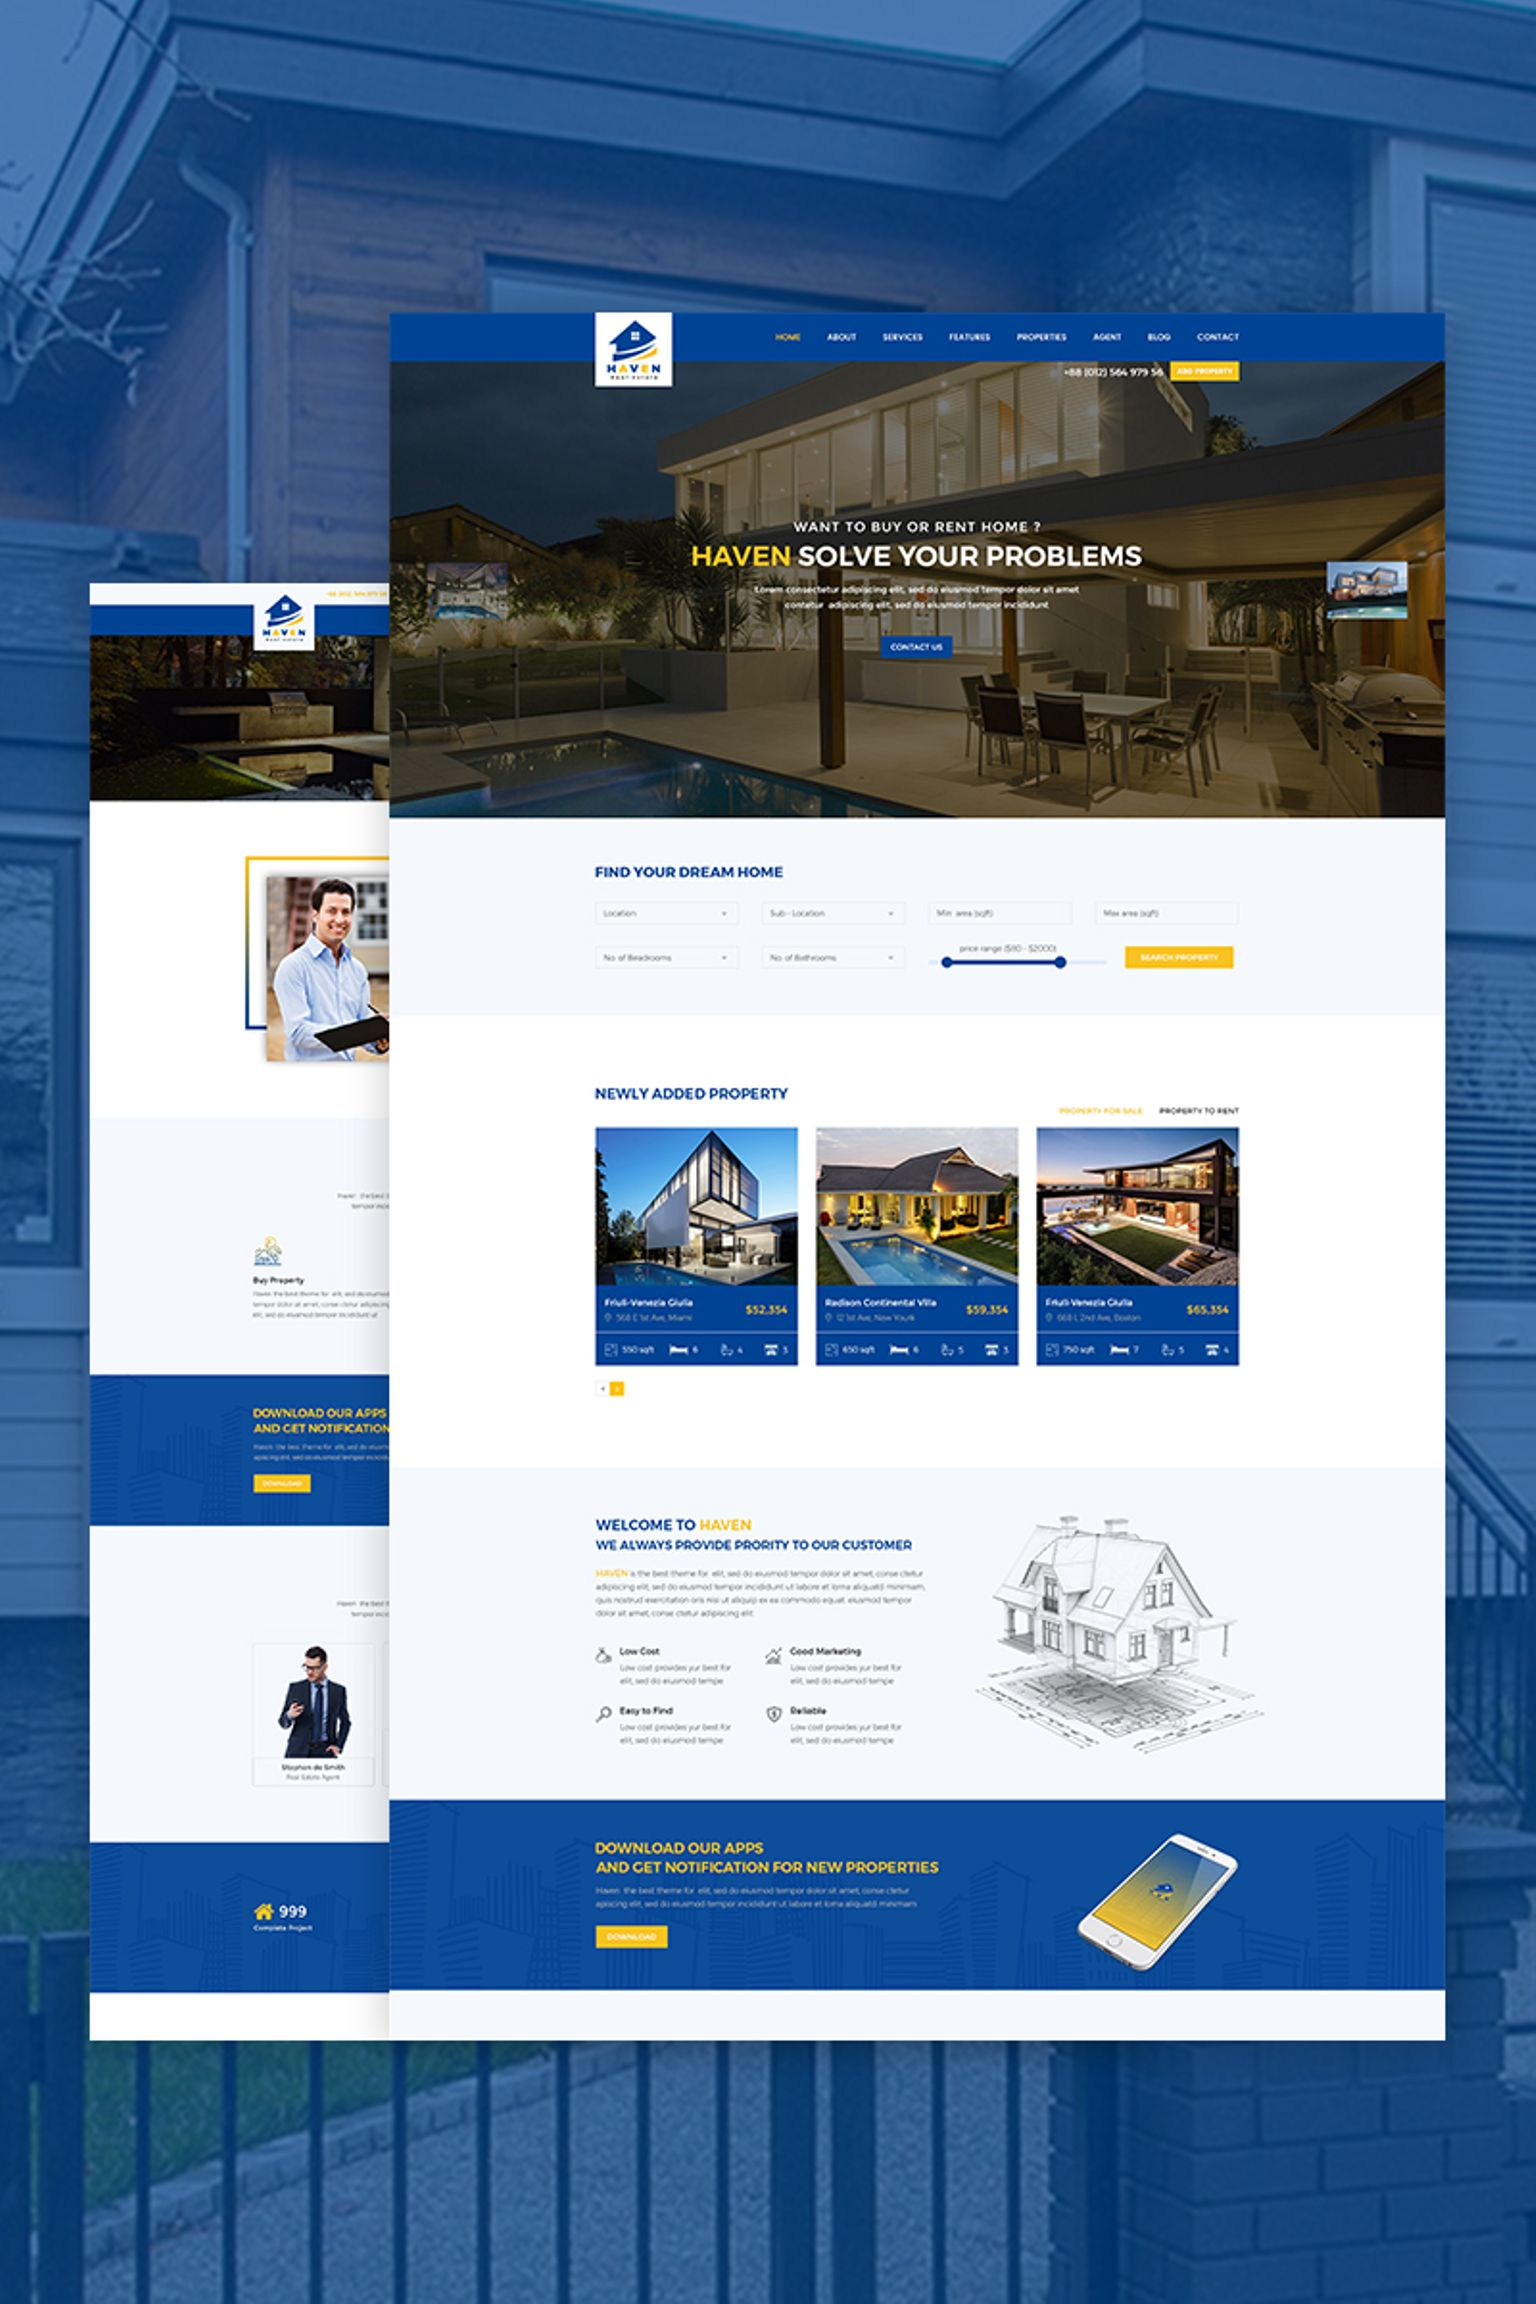 Website Design Template 67385 - broker business developer directory google maps listing property real estate agent realtor rental